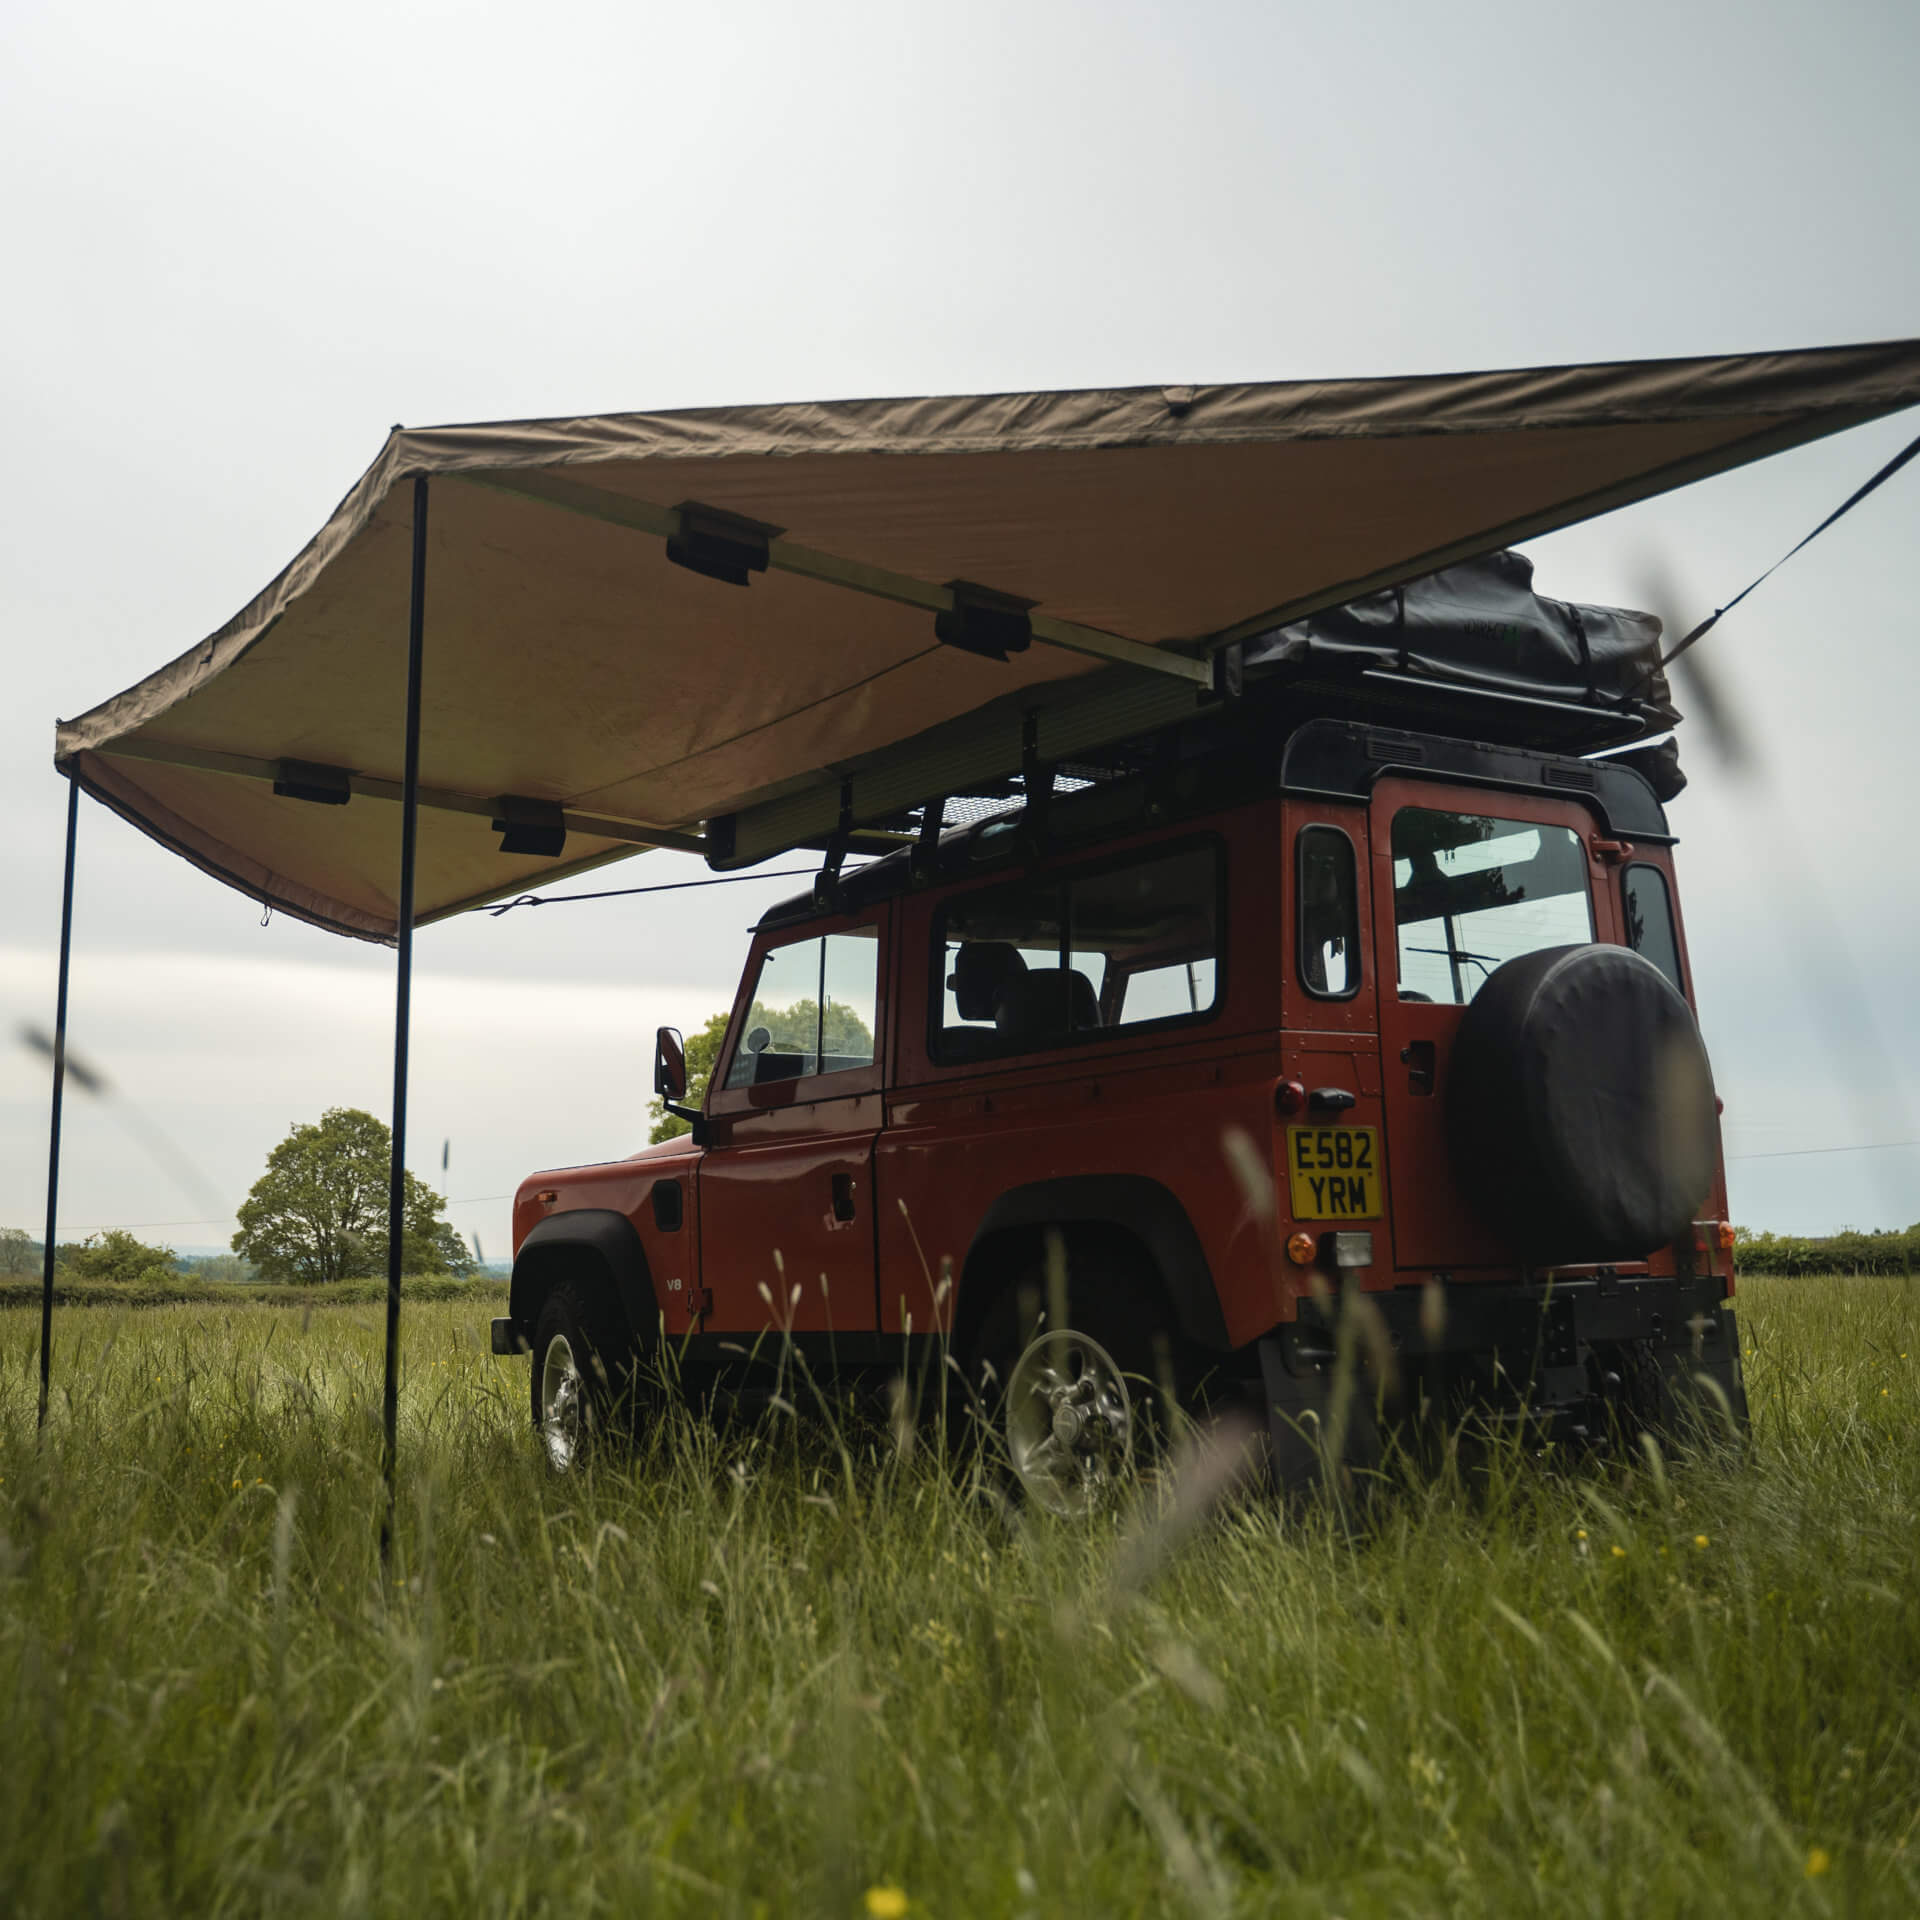 Direct4x4 180 Overland Expedition Fold-Out Vehicle Camping Side Awning